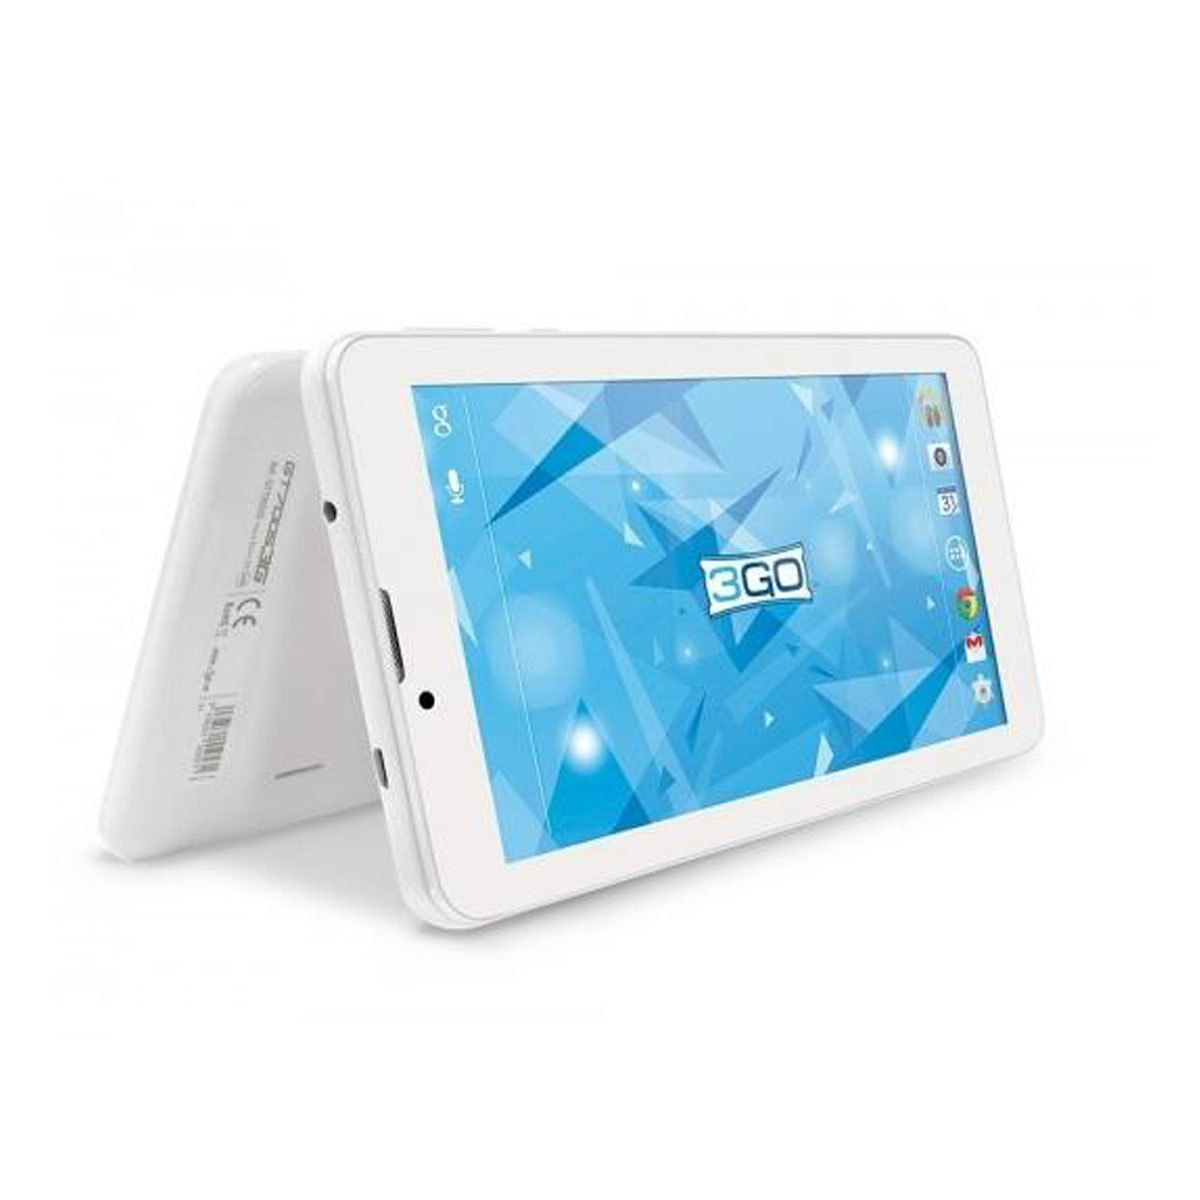 Tablet 7 IPs 3go Gt7005 3G 1024x600 Intel Eco Quad Core 16 GB 1 GB Dual Cam Android 8.1 Color White